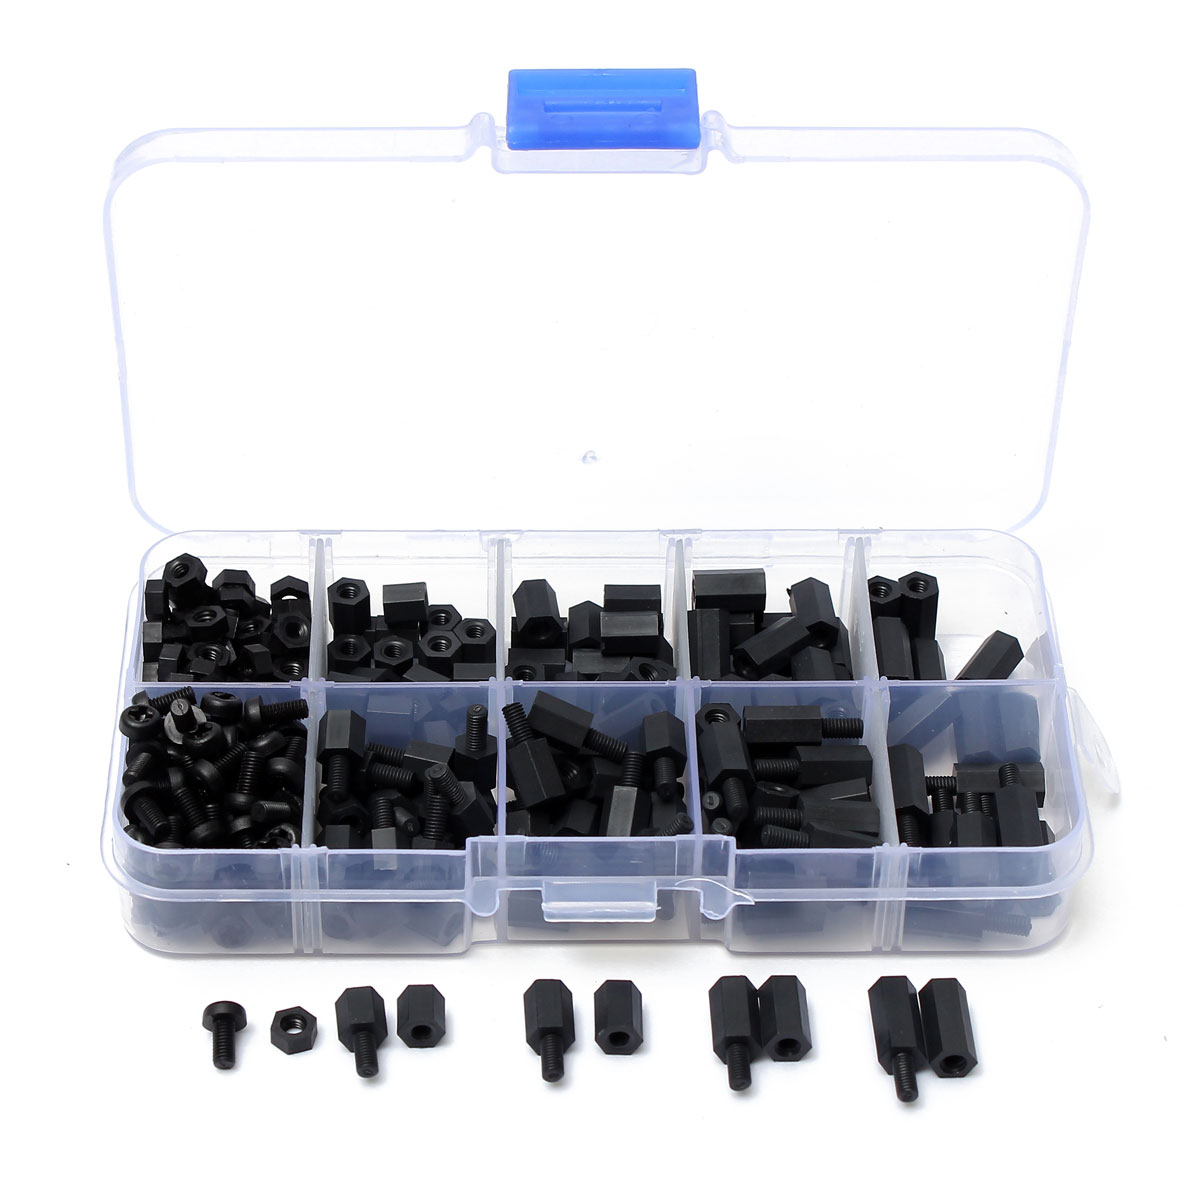 300pcs M3 Nylon Black Hex Screw Nut Spacer Stand-off Varied Length Assortment Kit Box 200pcs m2 5 2 5mm brass standoff spacer m2 5 male x female thread long 6mm with hex nuts assortment kit